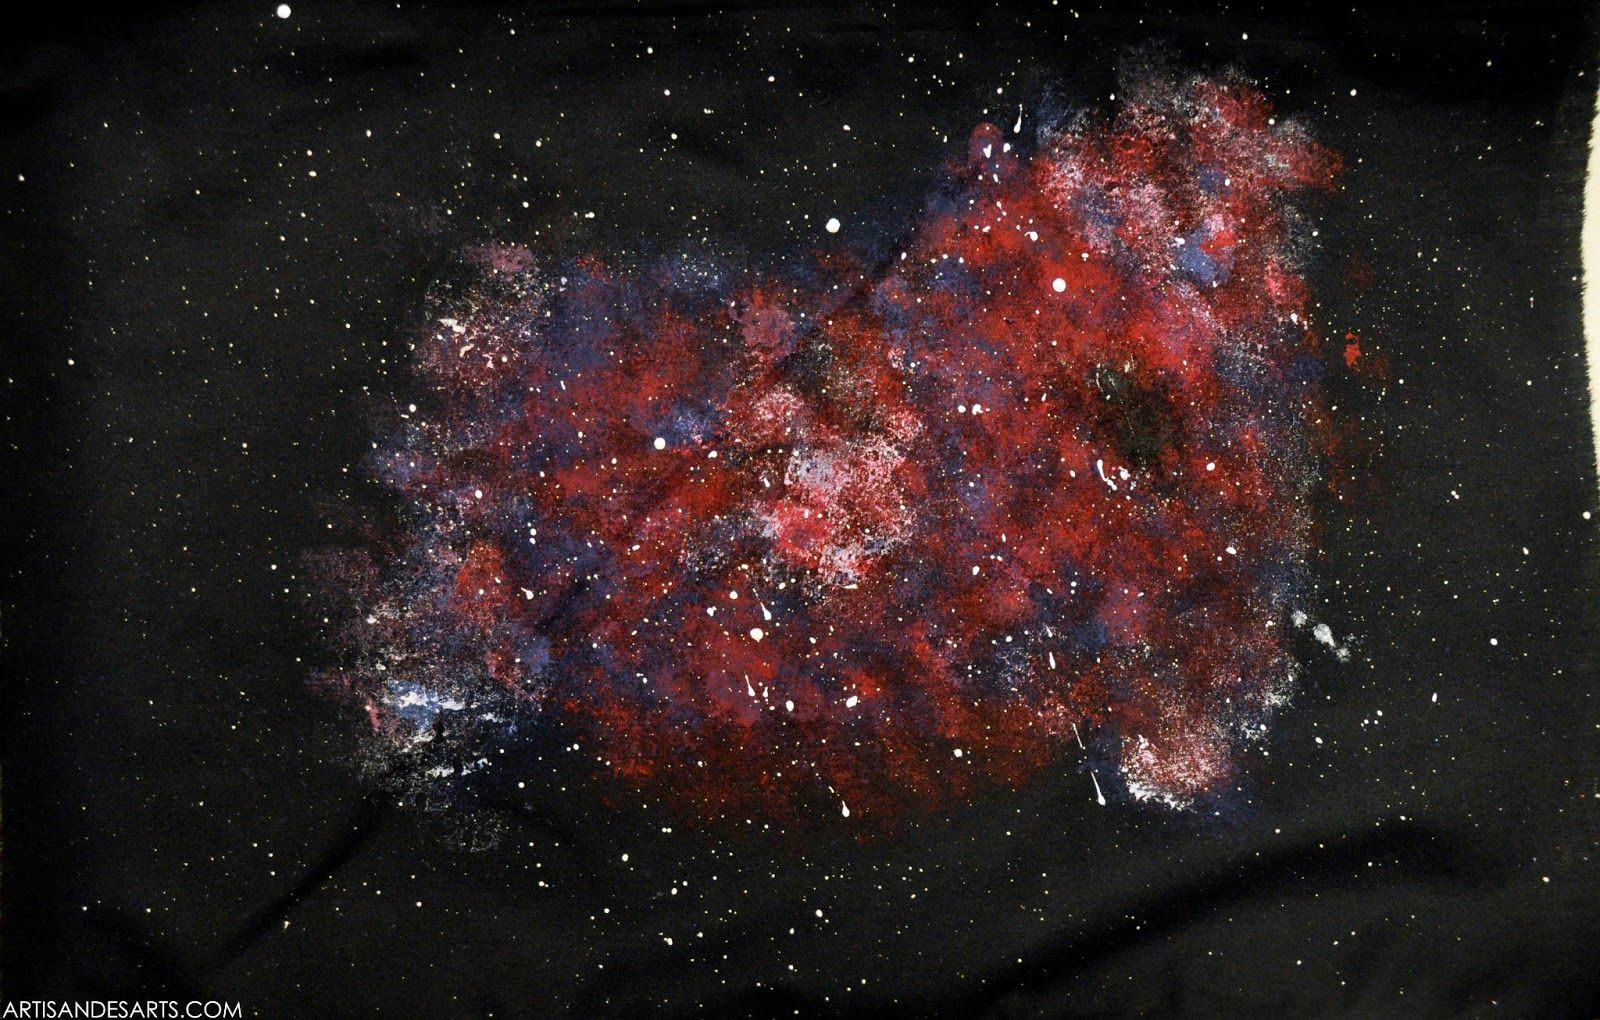 Artisan des arts outer space nebula galaxy paintings for Nebula fabric